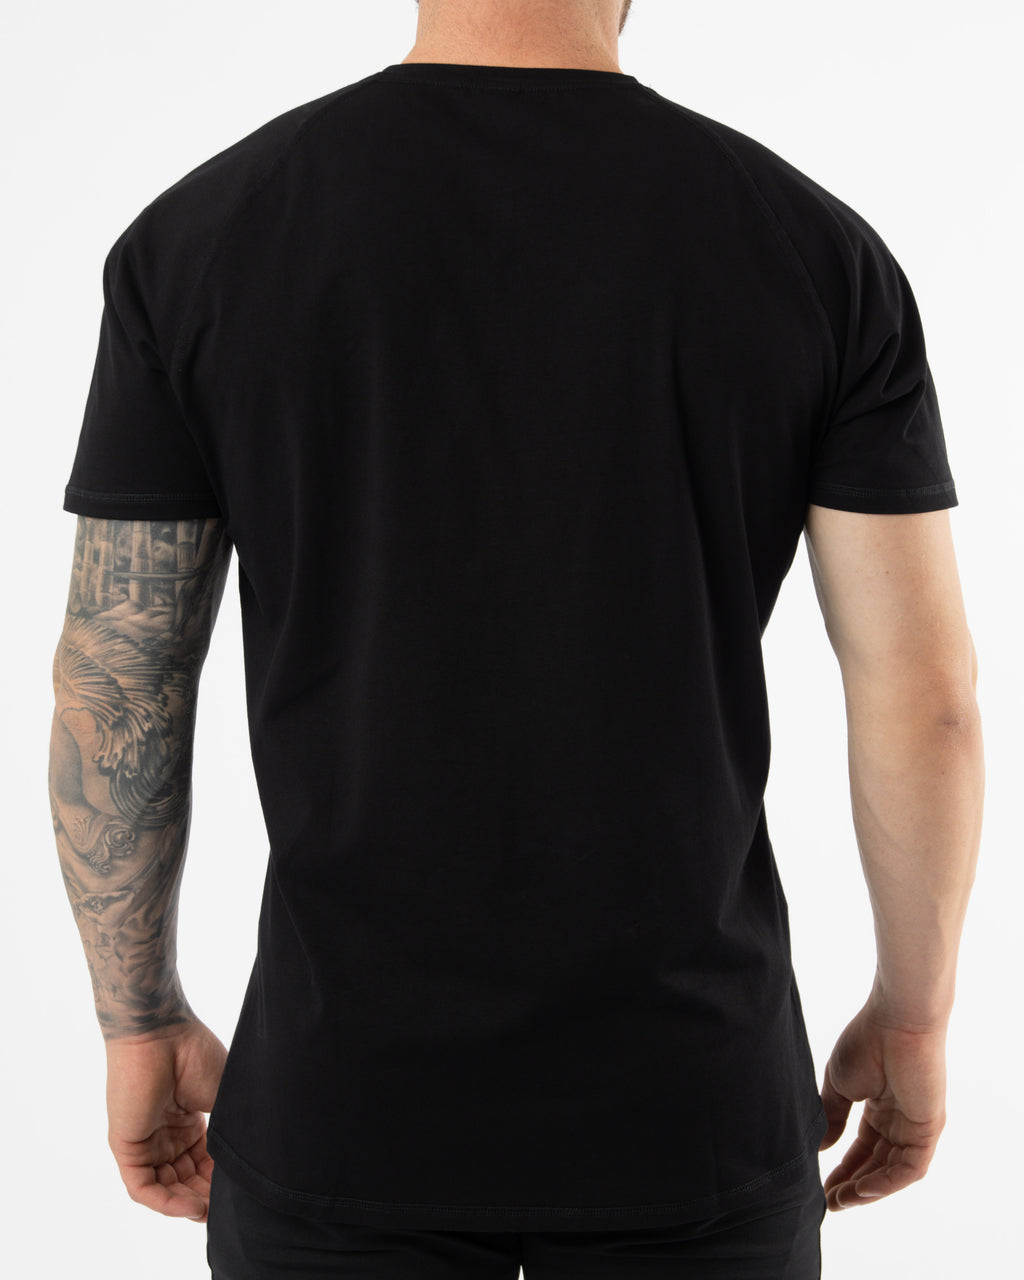 Performance Tee ~ Black